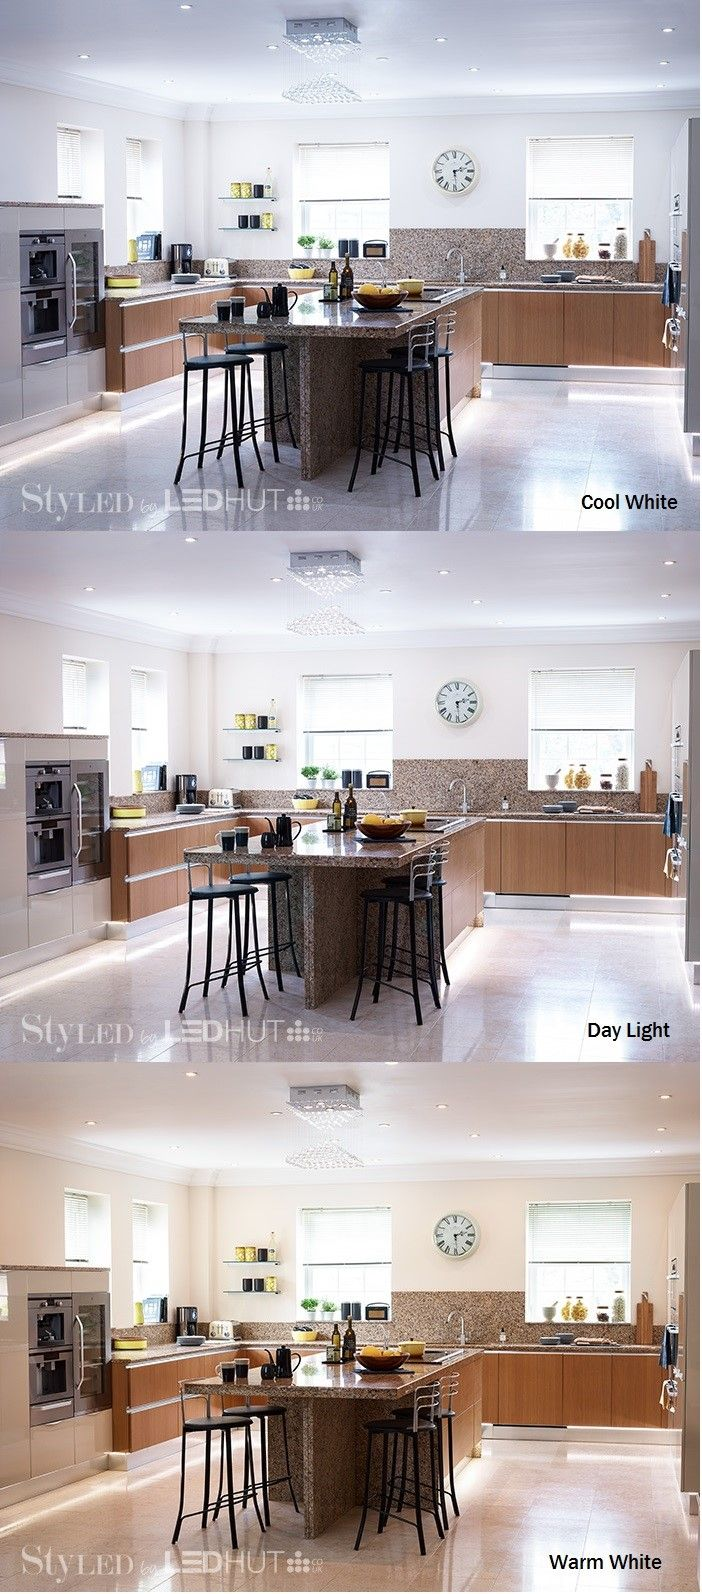 Create fresh, functional and homely kitchen lighting with LED spots. Choose between daylight, warm white or cool white light #StyLEDlighting